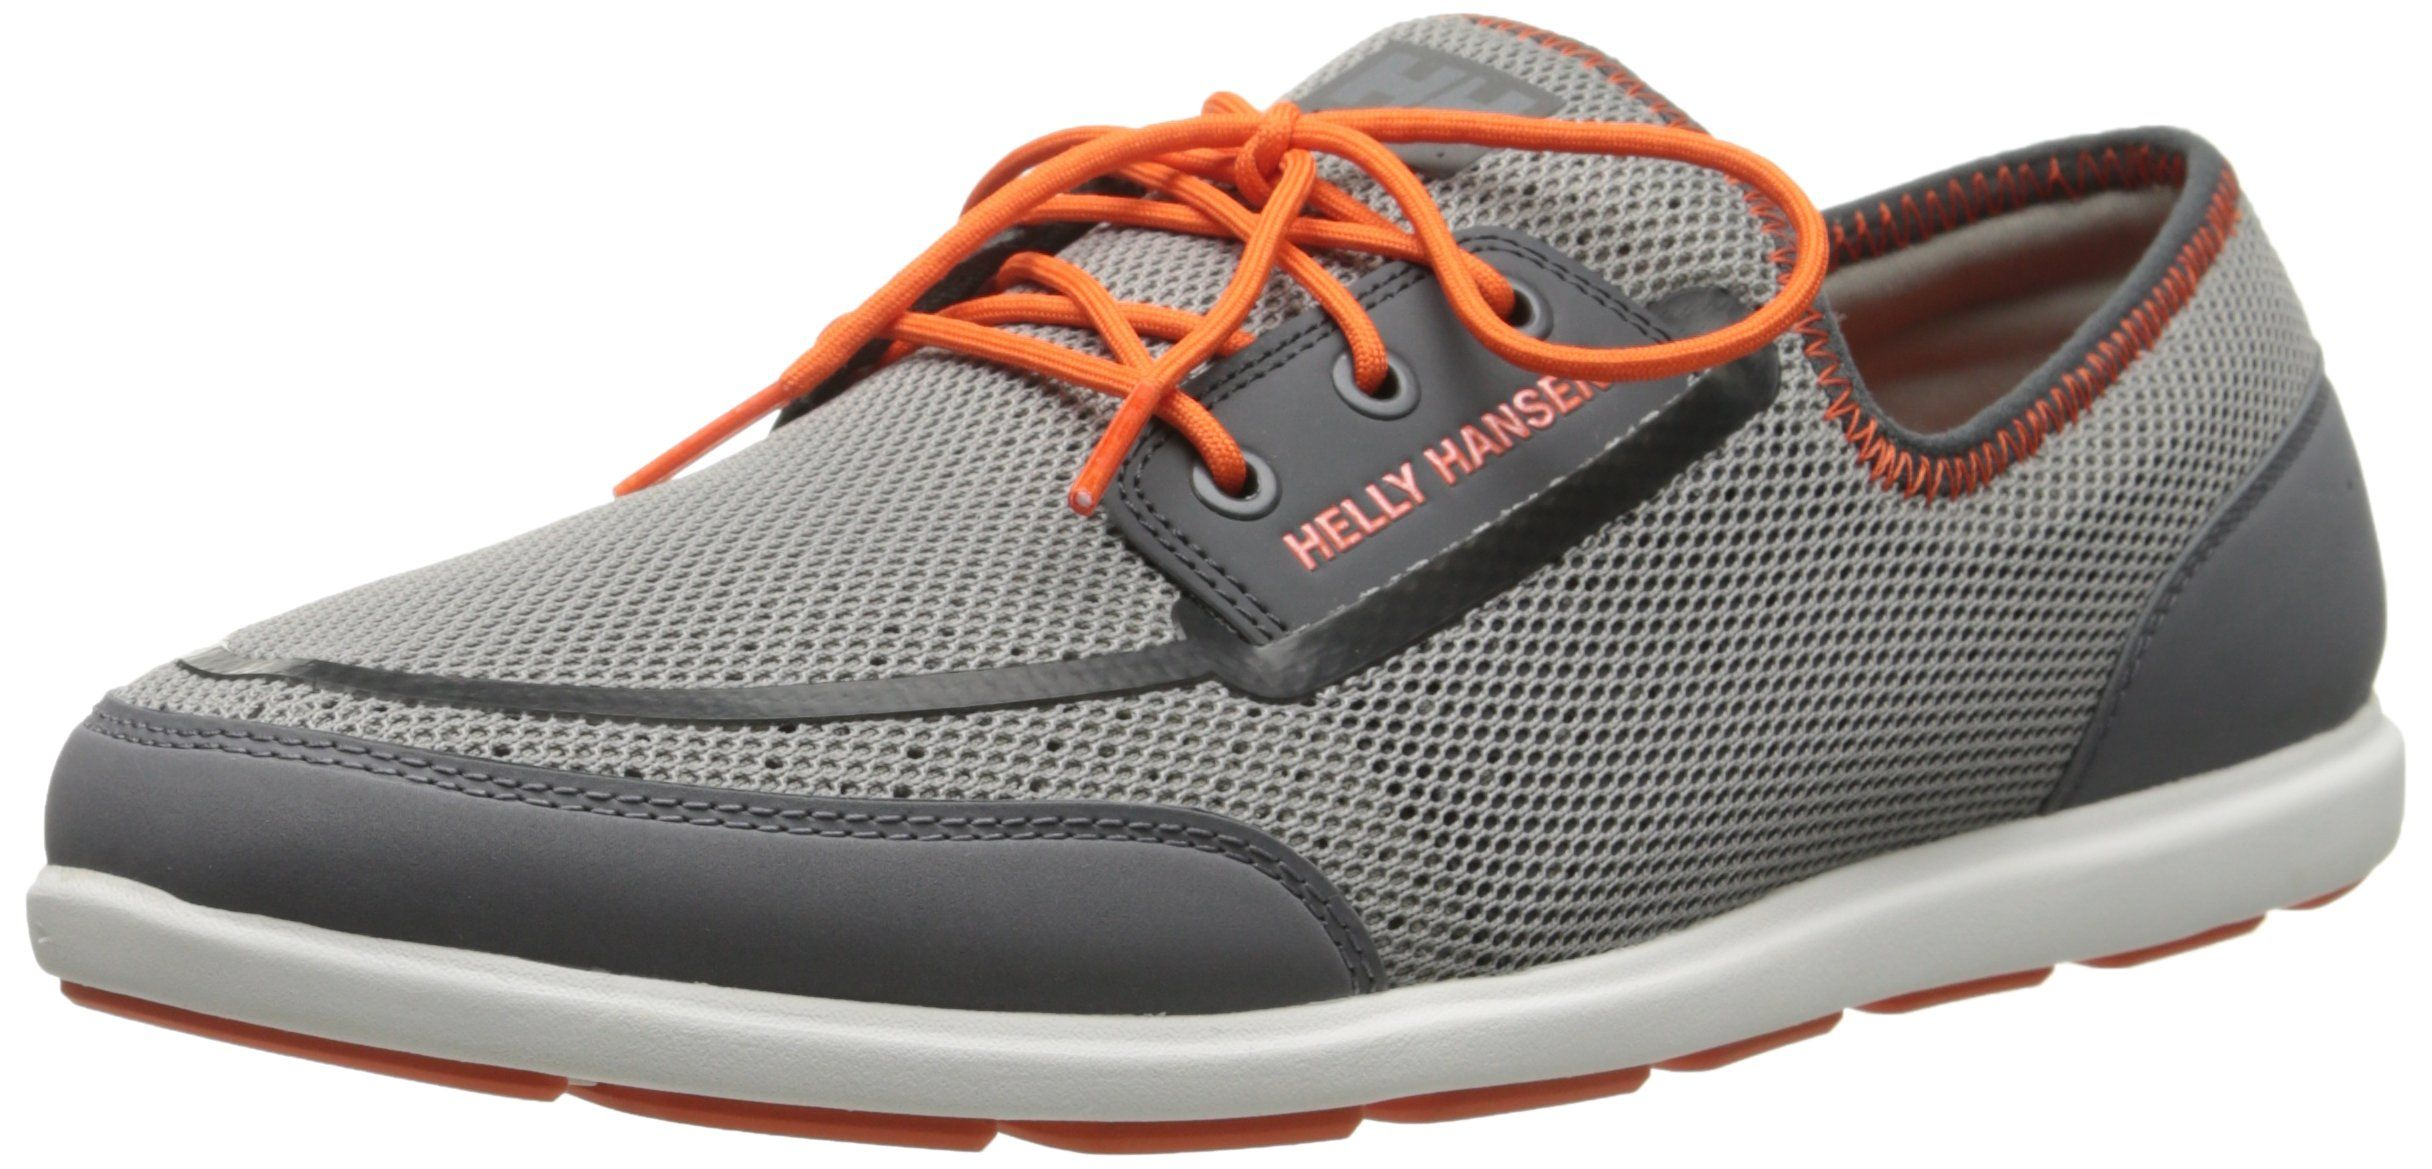 Helly Hansen Men's Trysail Boat Shoe, New Light GreyMid